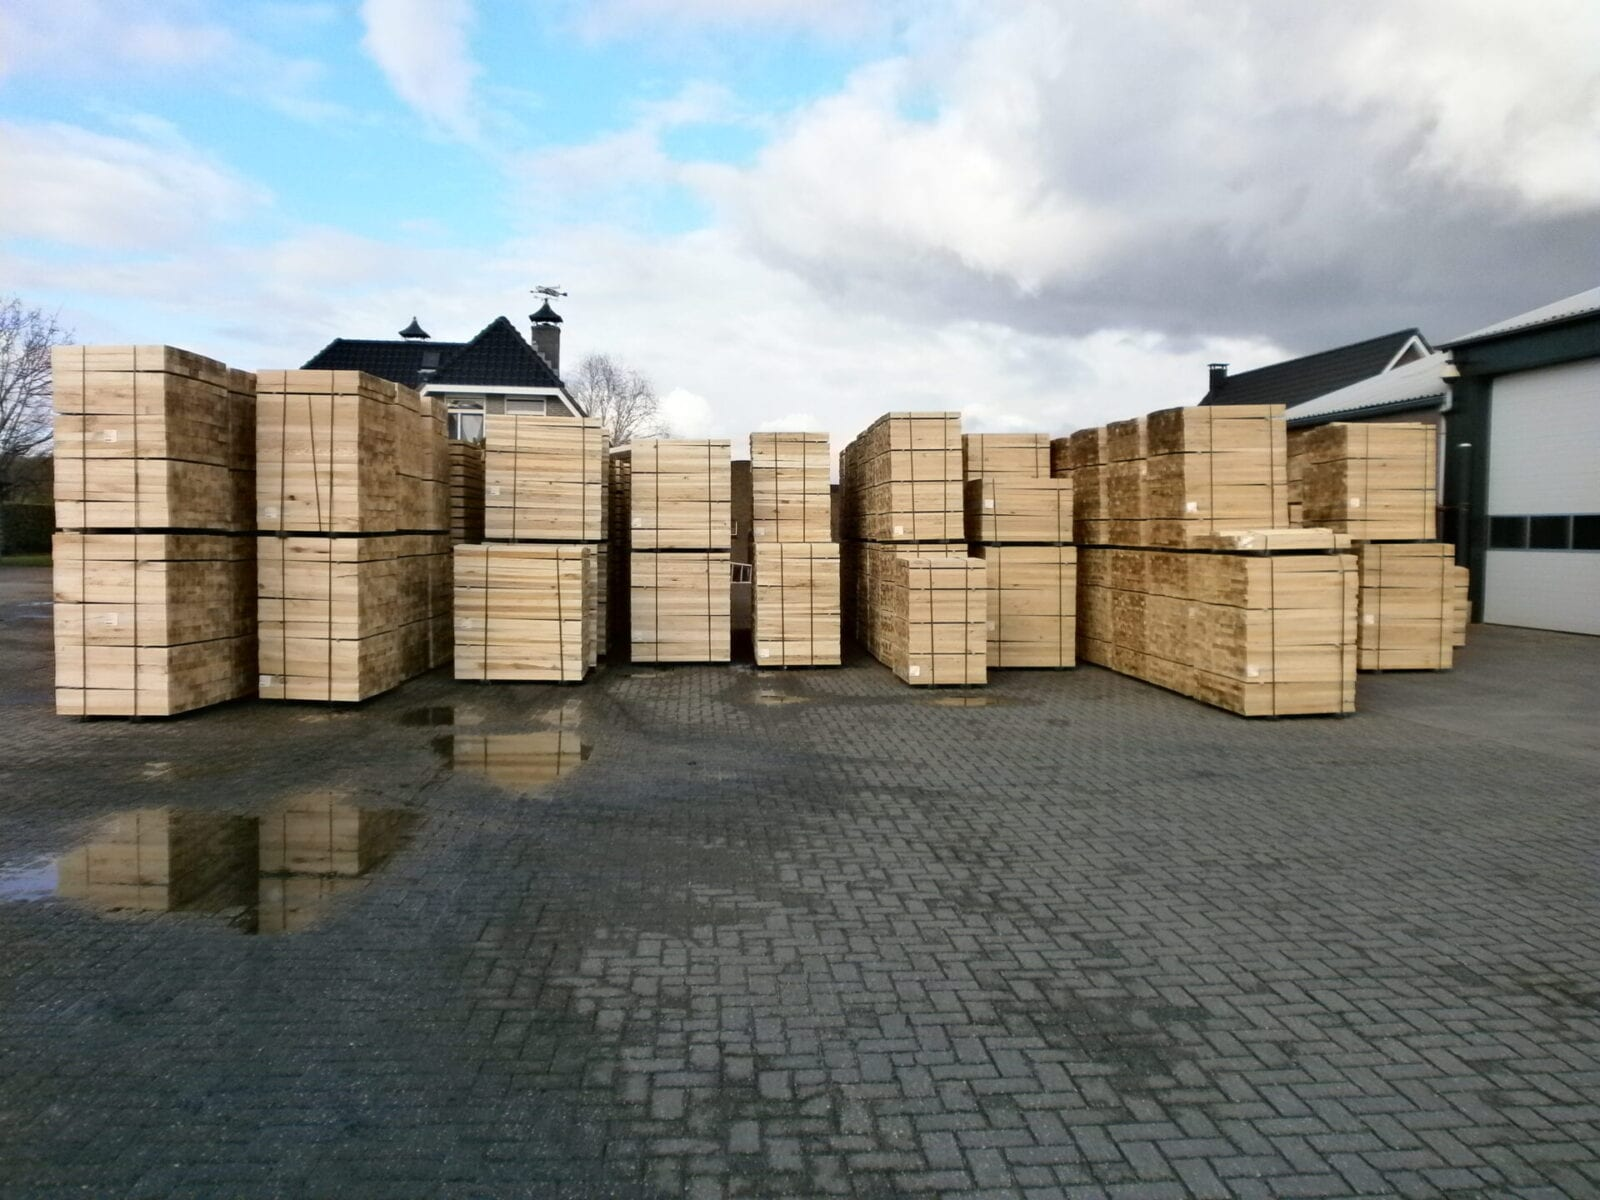 Embalage hout / stophout